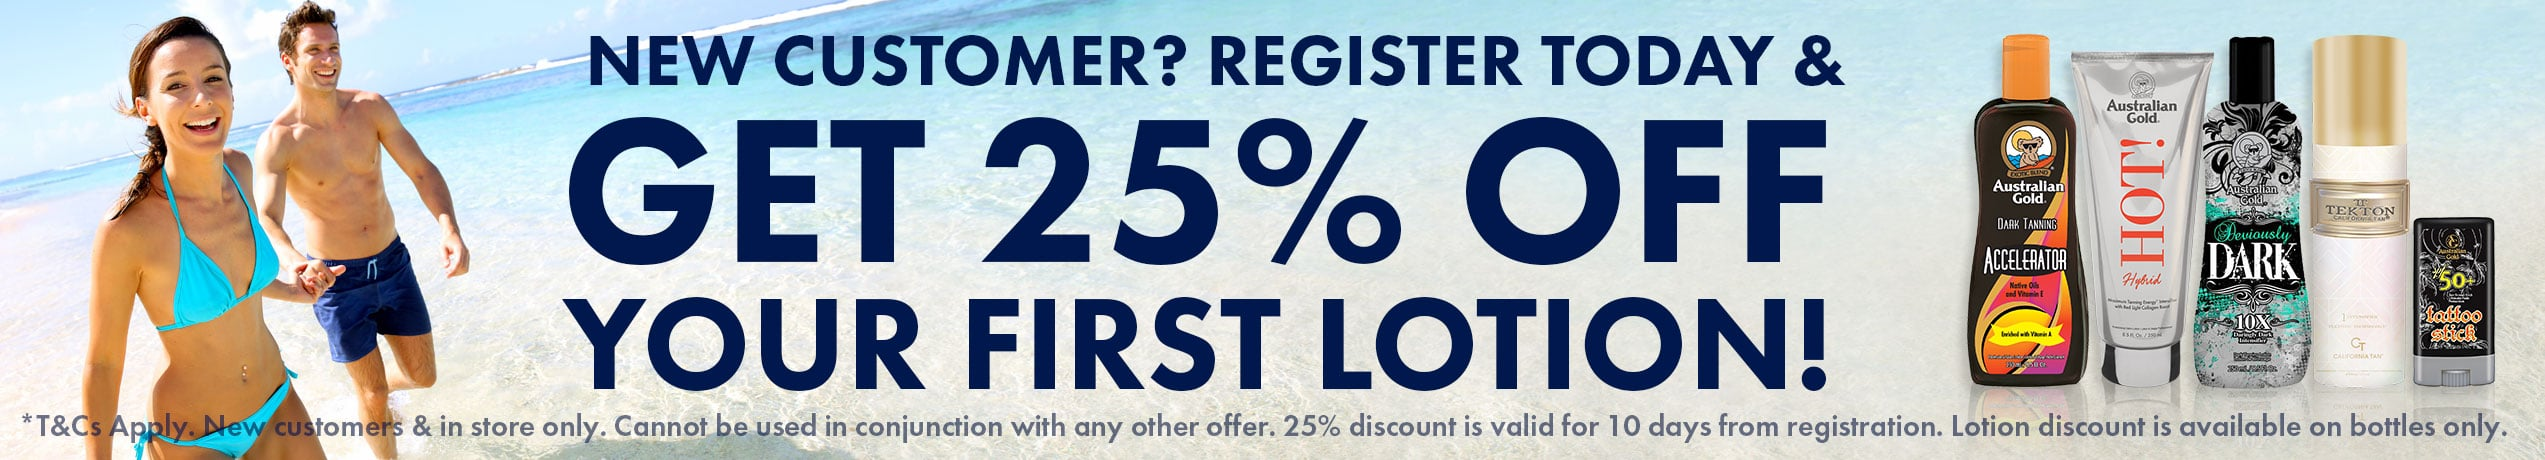 New Customer? Get 25% off Your First Lotion - Register Today